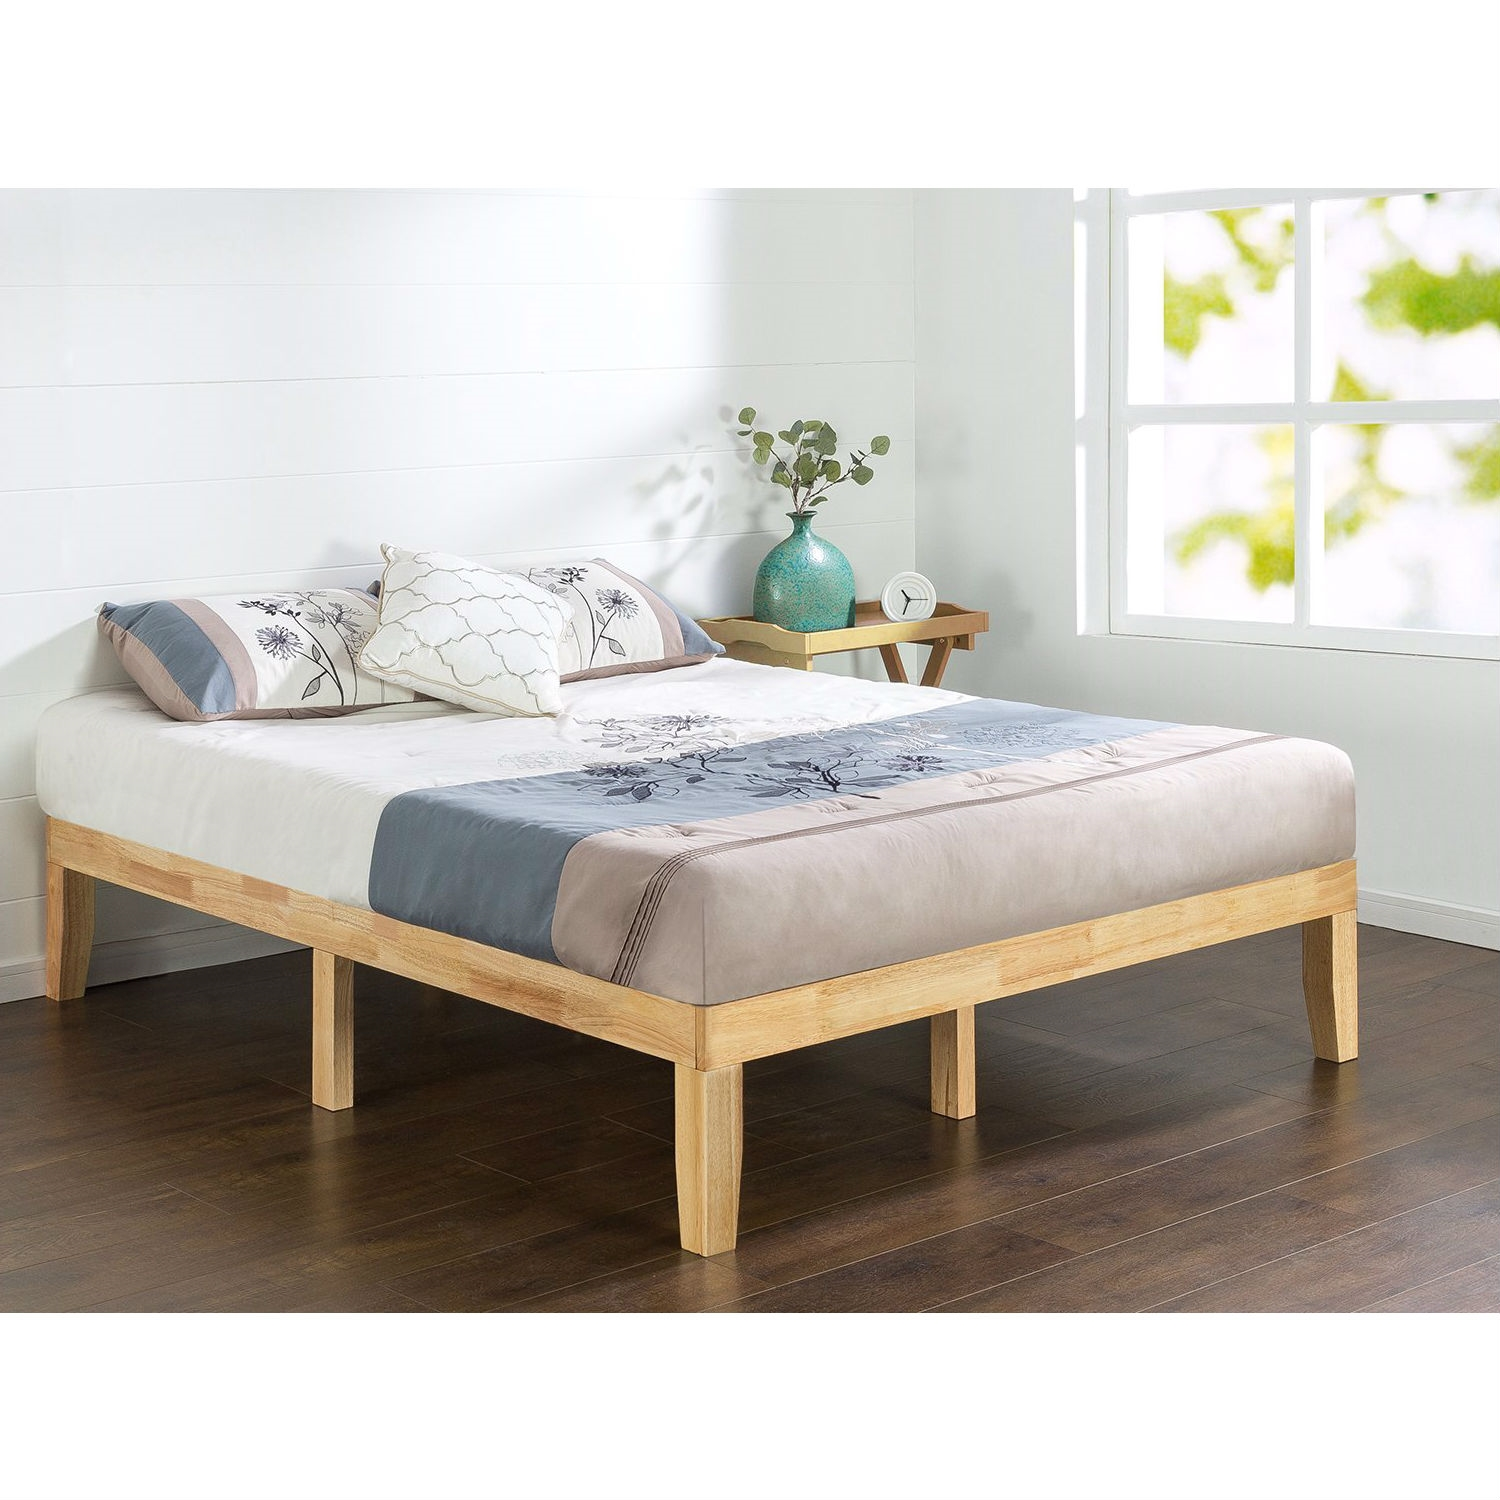 Full size Solid Wood Platform Bed Frame in Natural Finish ...